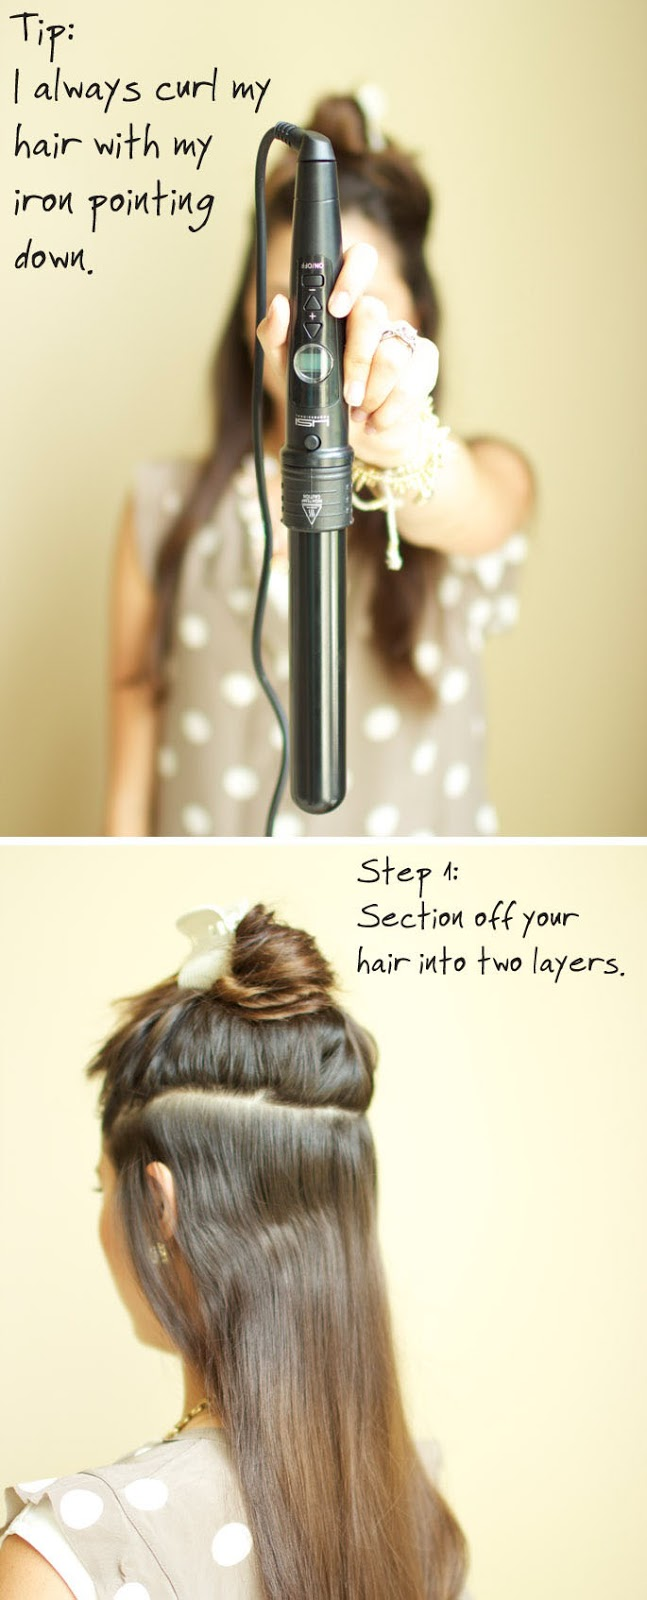 How to Curl Your Hair with iron Pointing down